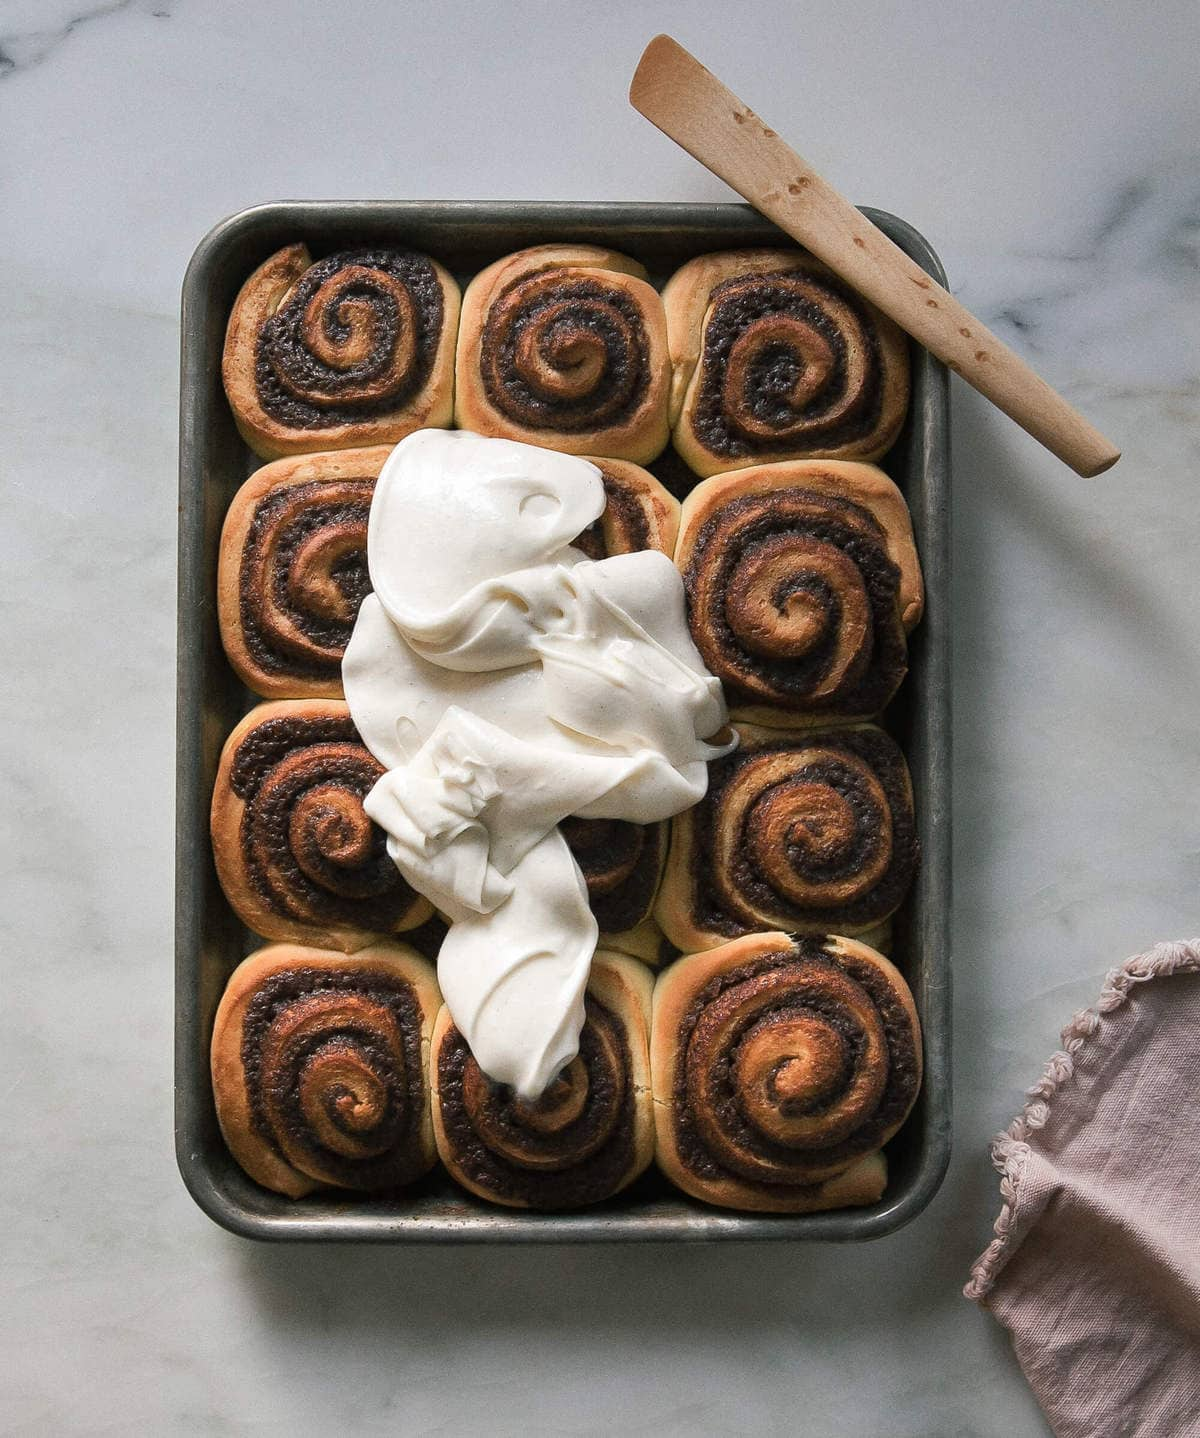 warm cinnamon rolls with frosting poured on top